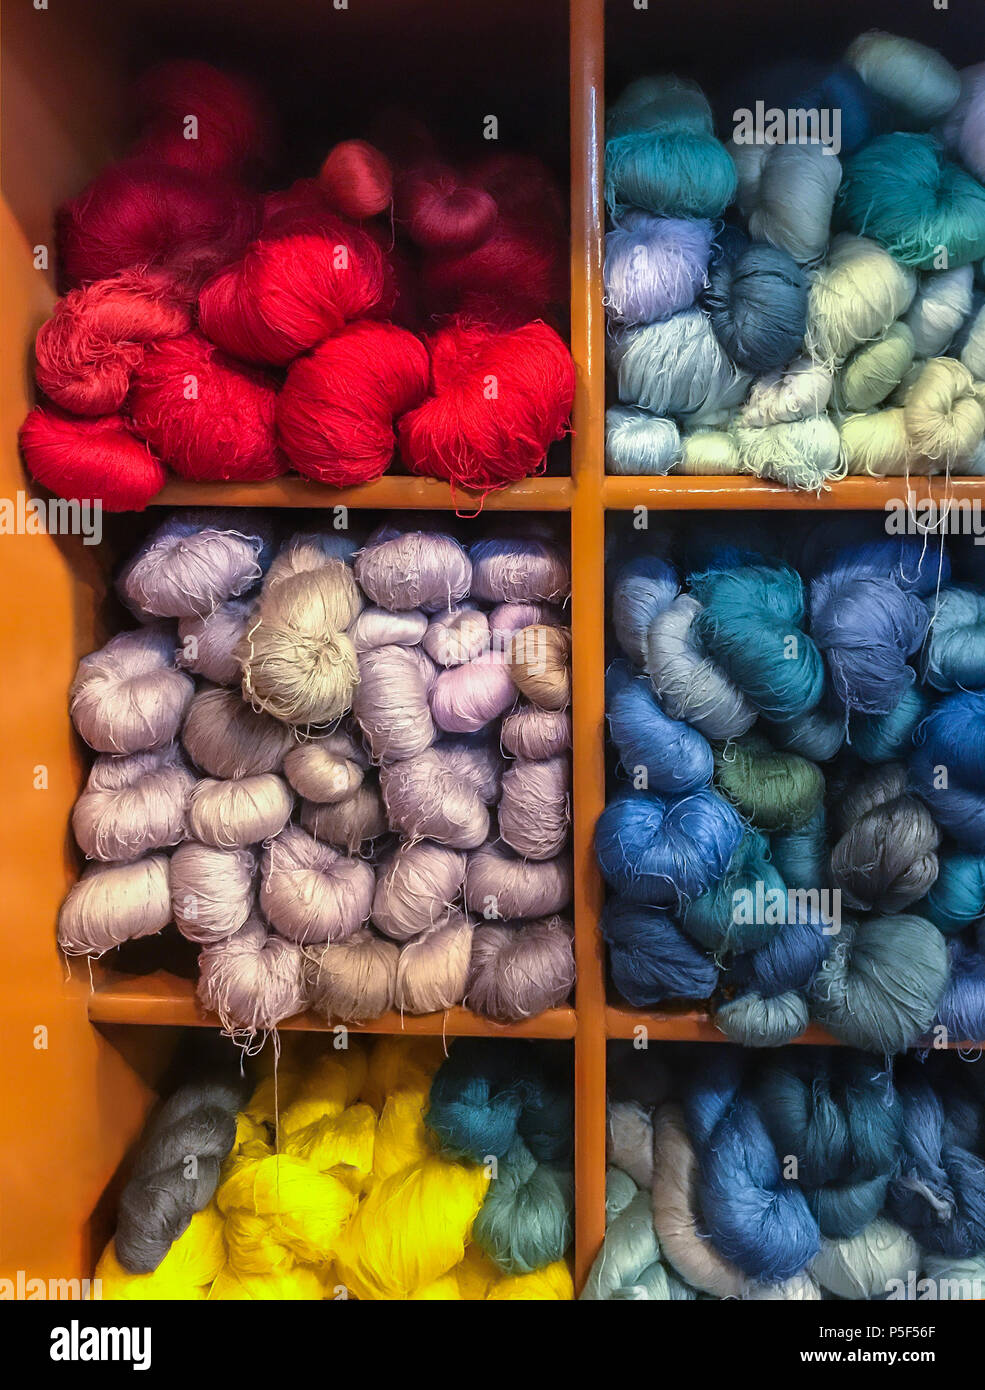 Asian Traditional Cultural Color Dyeing Silk Cloth Process Textile Yarn  Thread Fabric Material In Cabinet